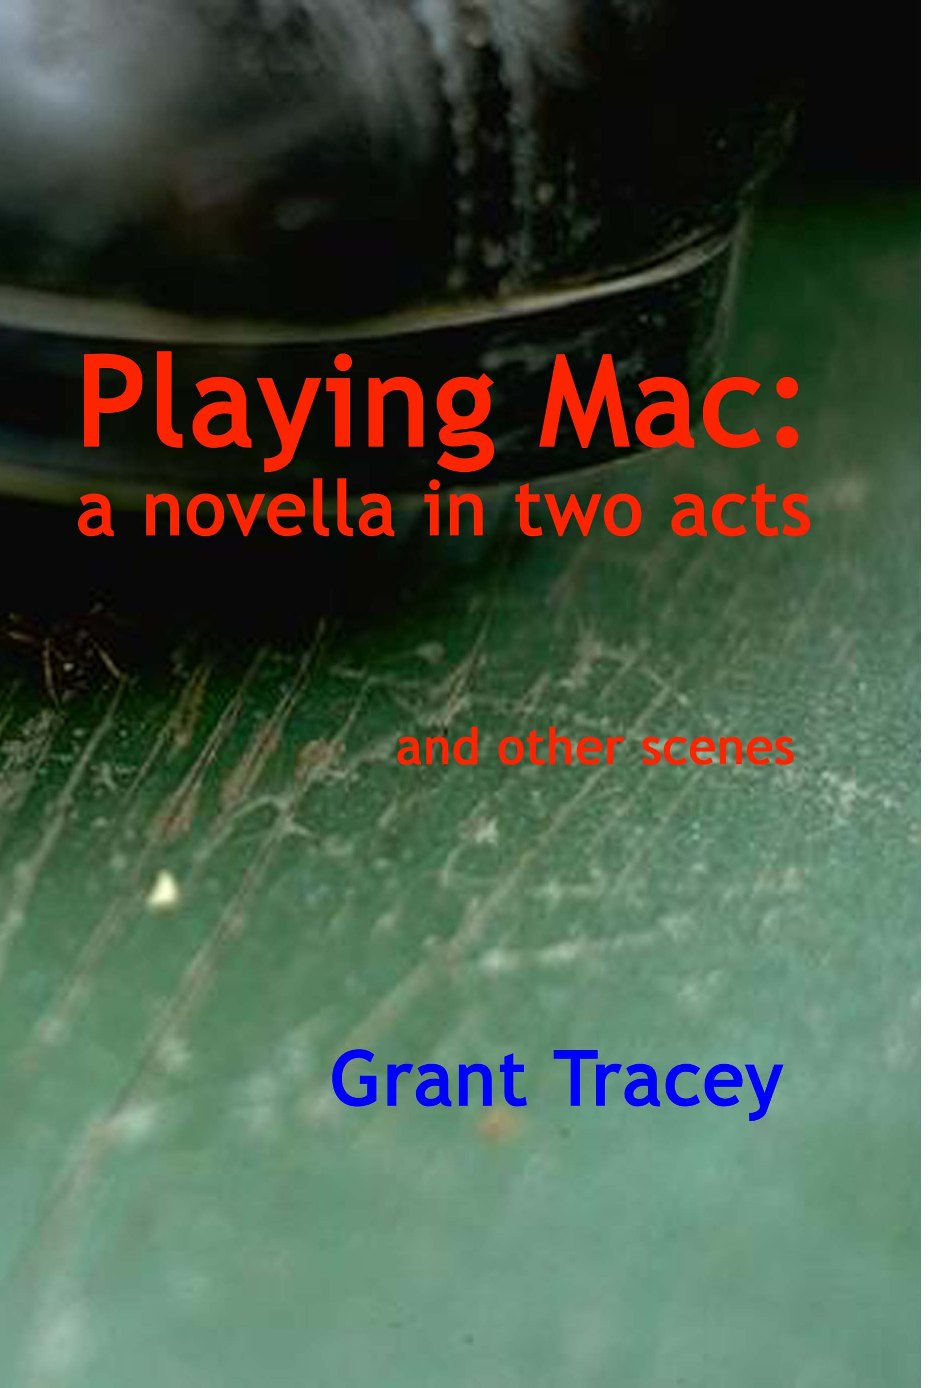 Playing Mac: a novella in two acts